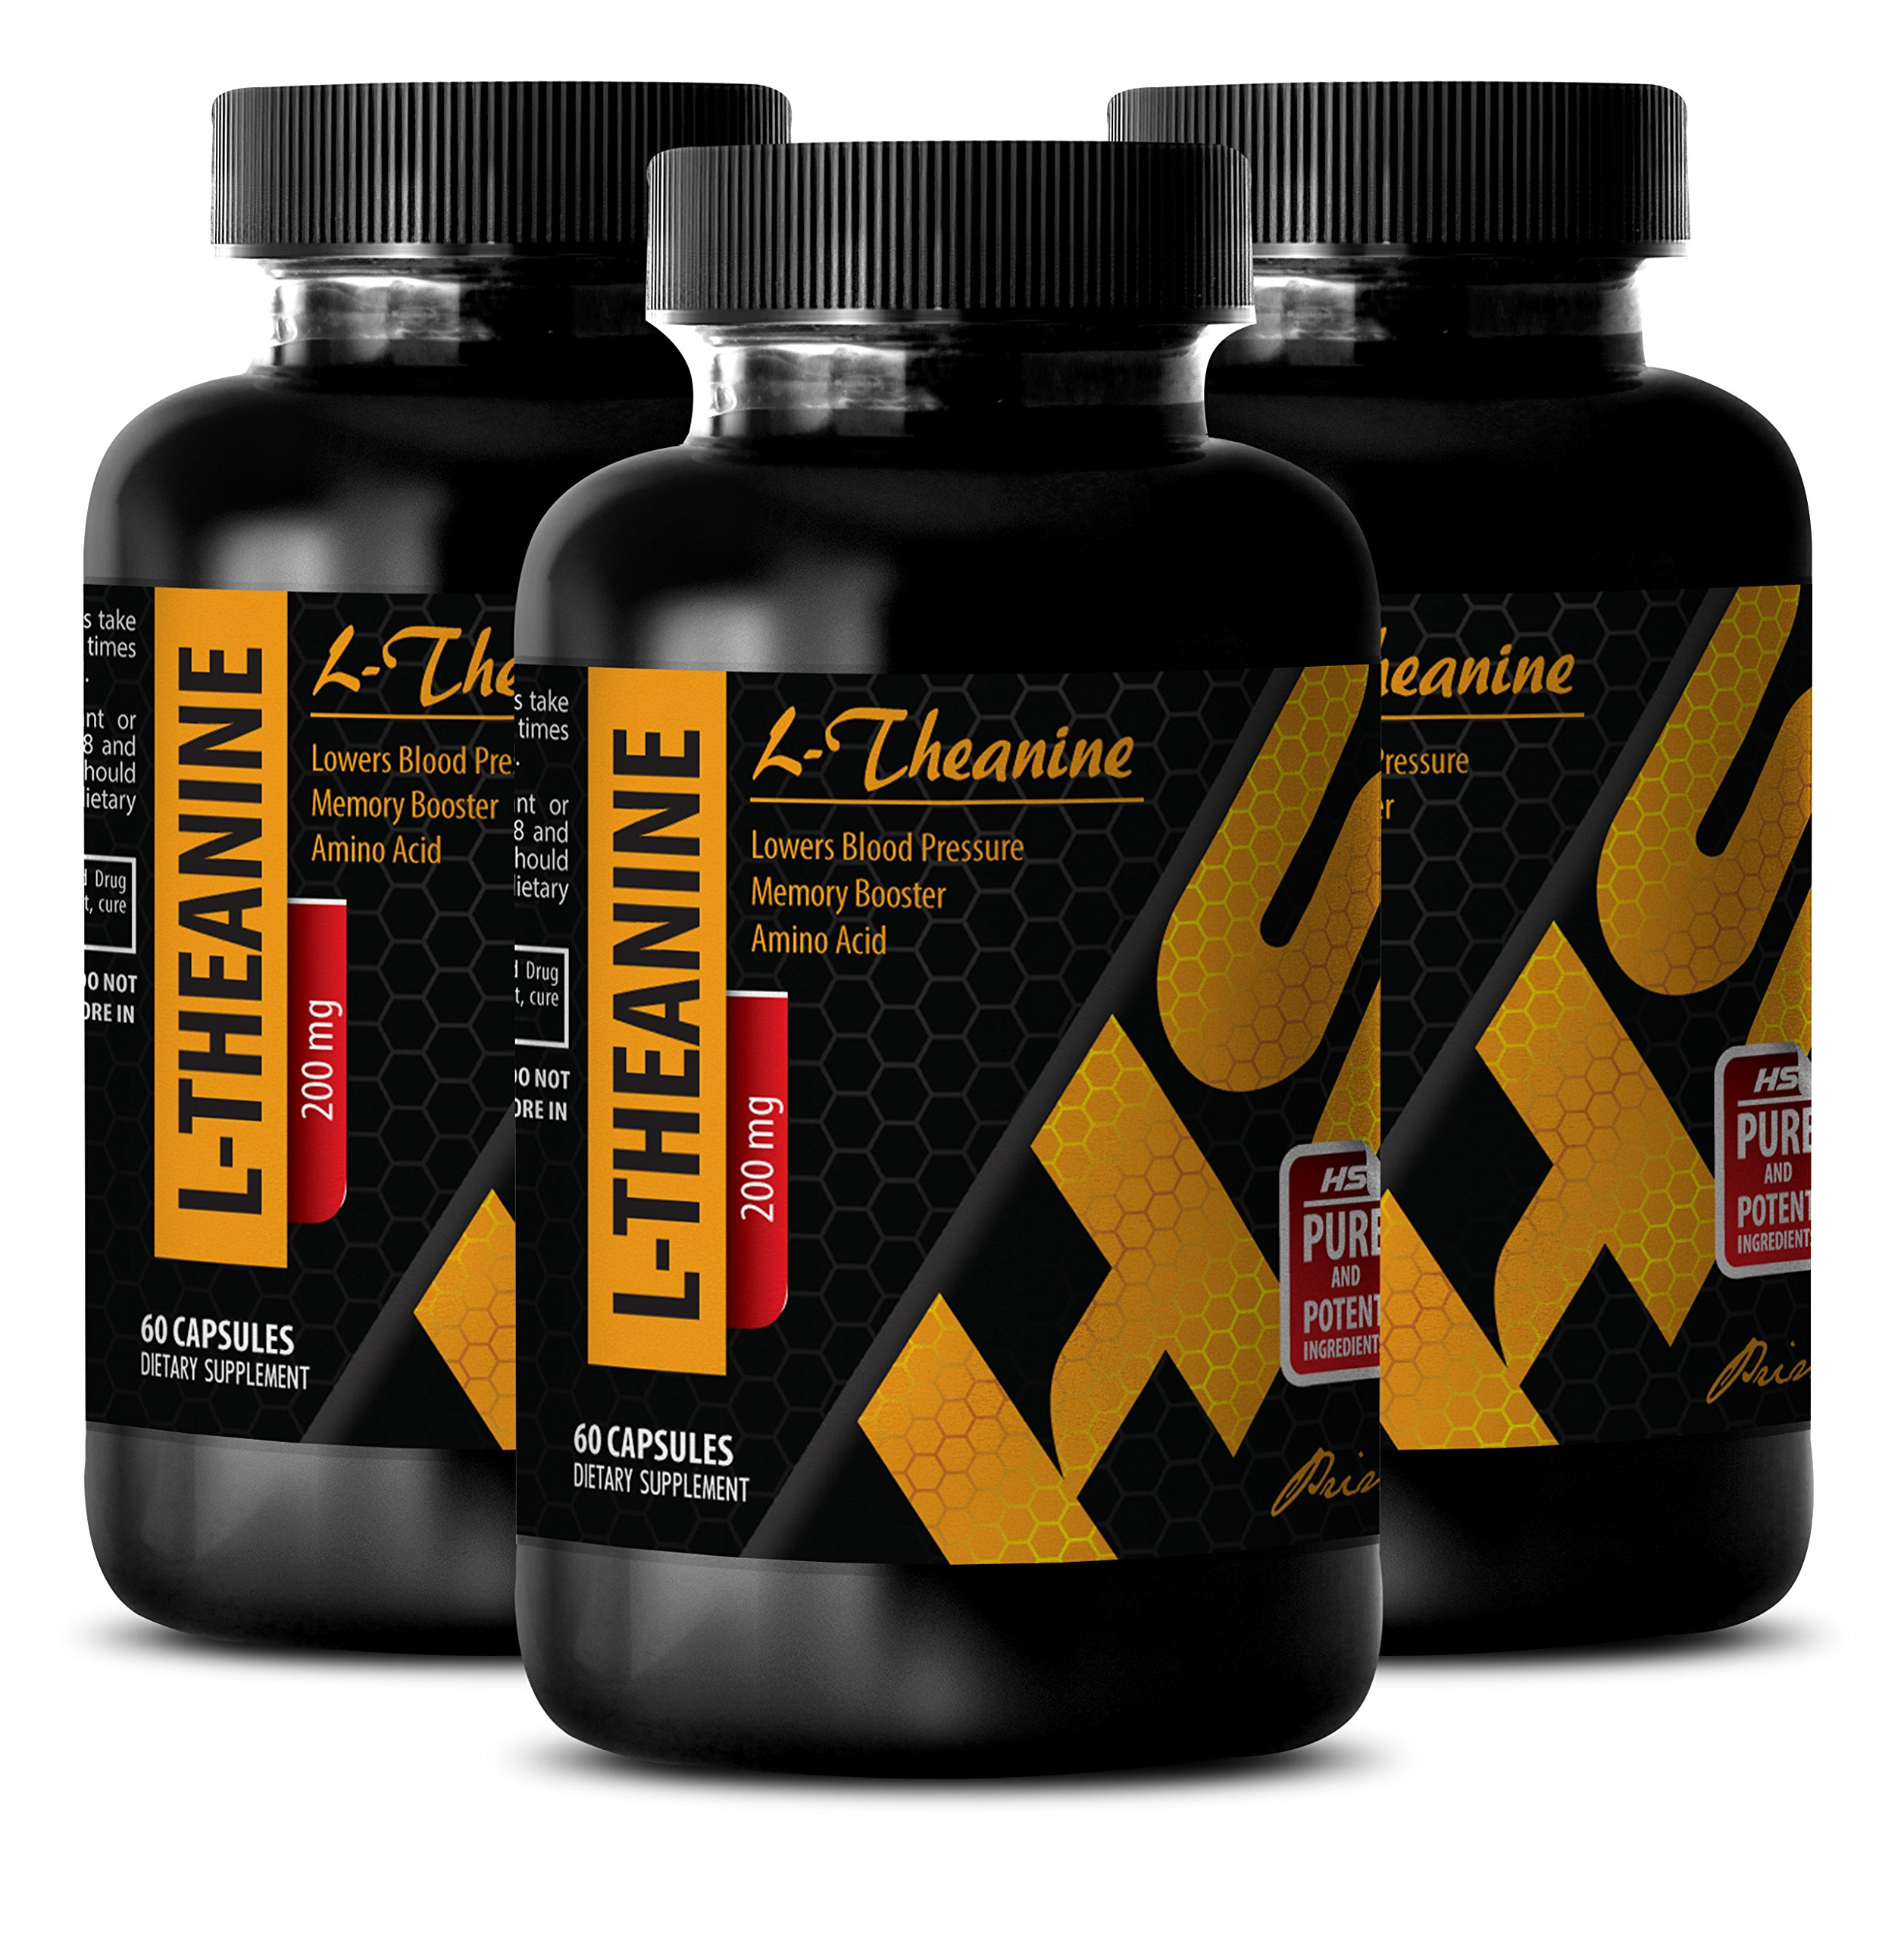 Weight management products - L-Theanine 200MG - Theanine supplement - 3 Bottle (180 Capsules) by HS PRIME LLC